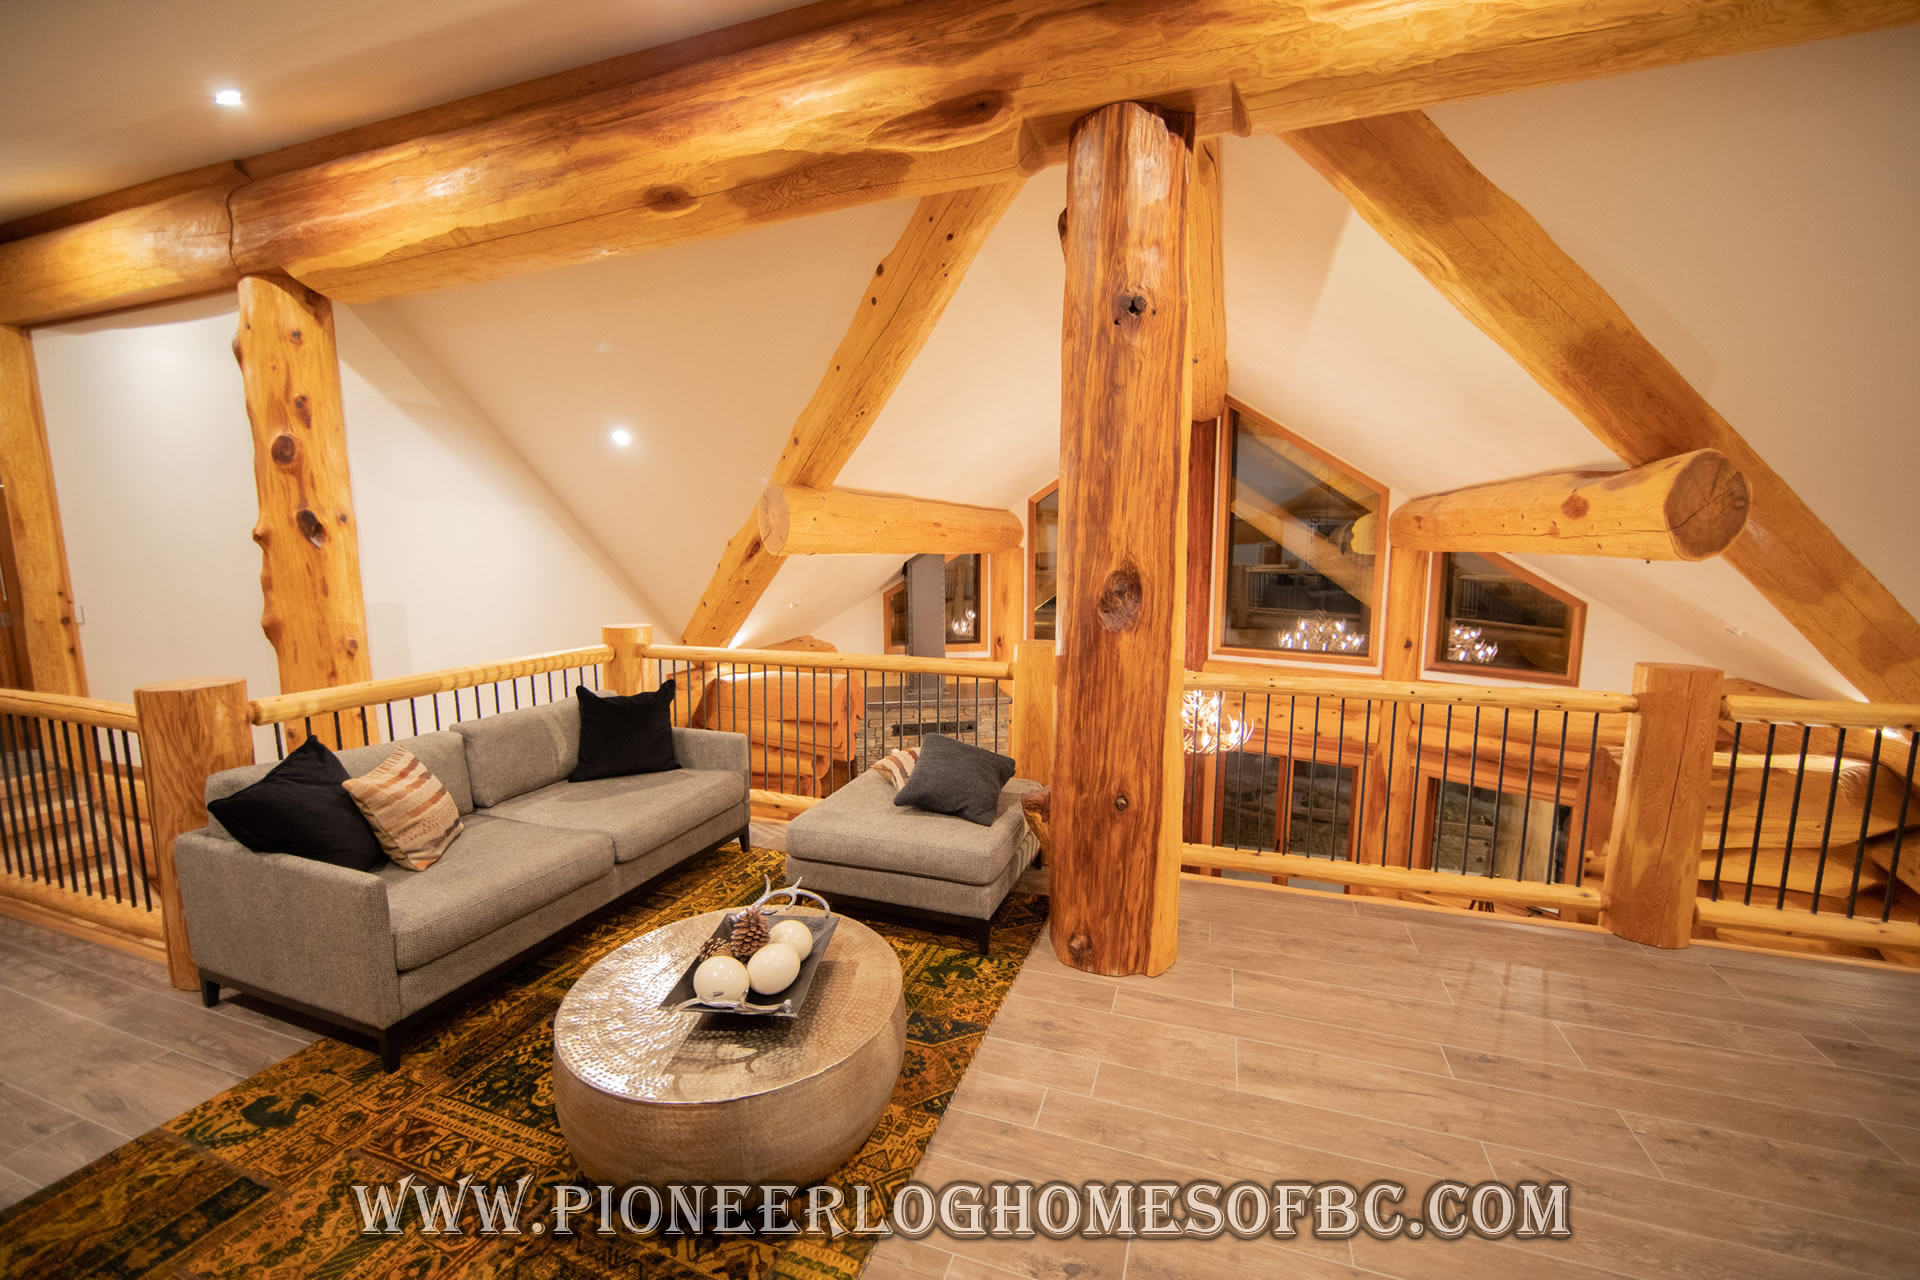 Log Cabin Style Living Room & Loft Designs | BC, Canada